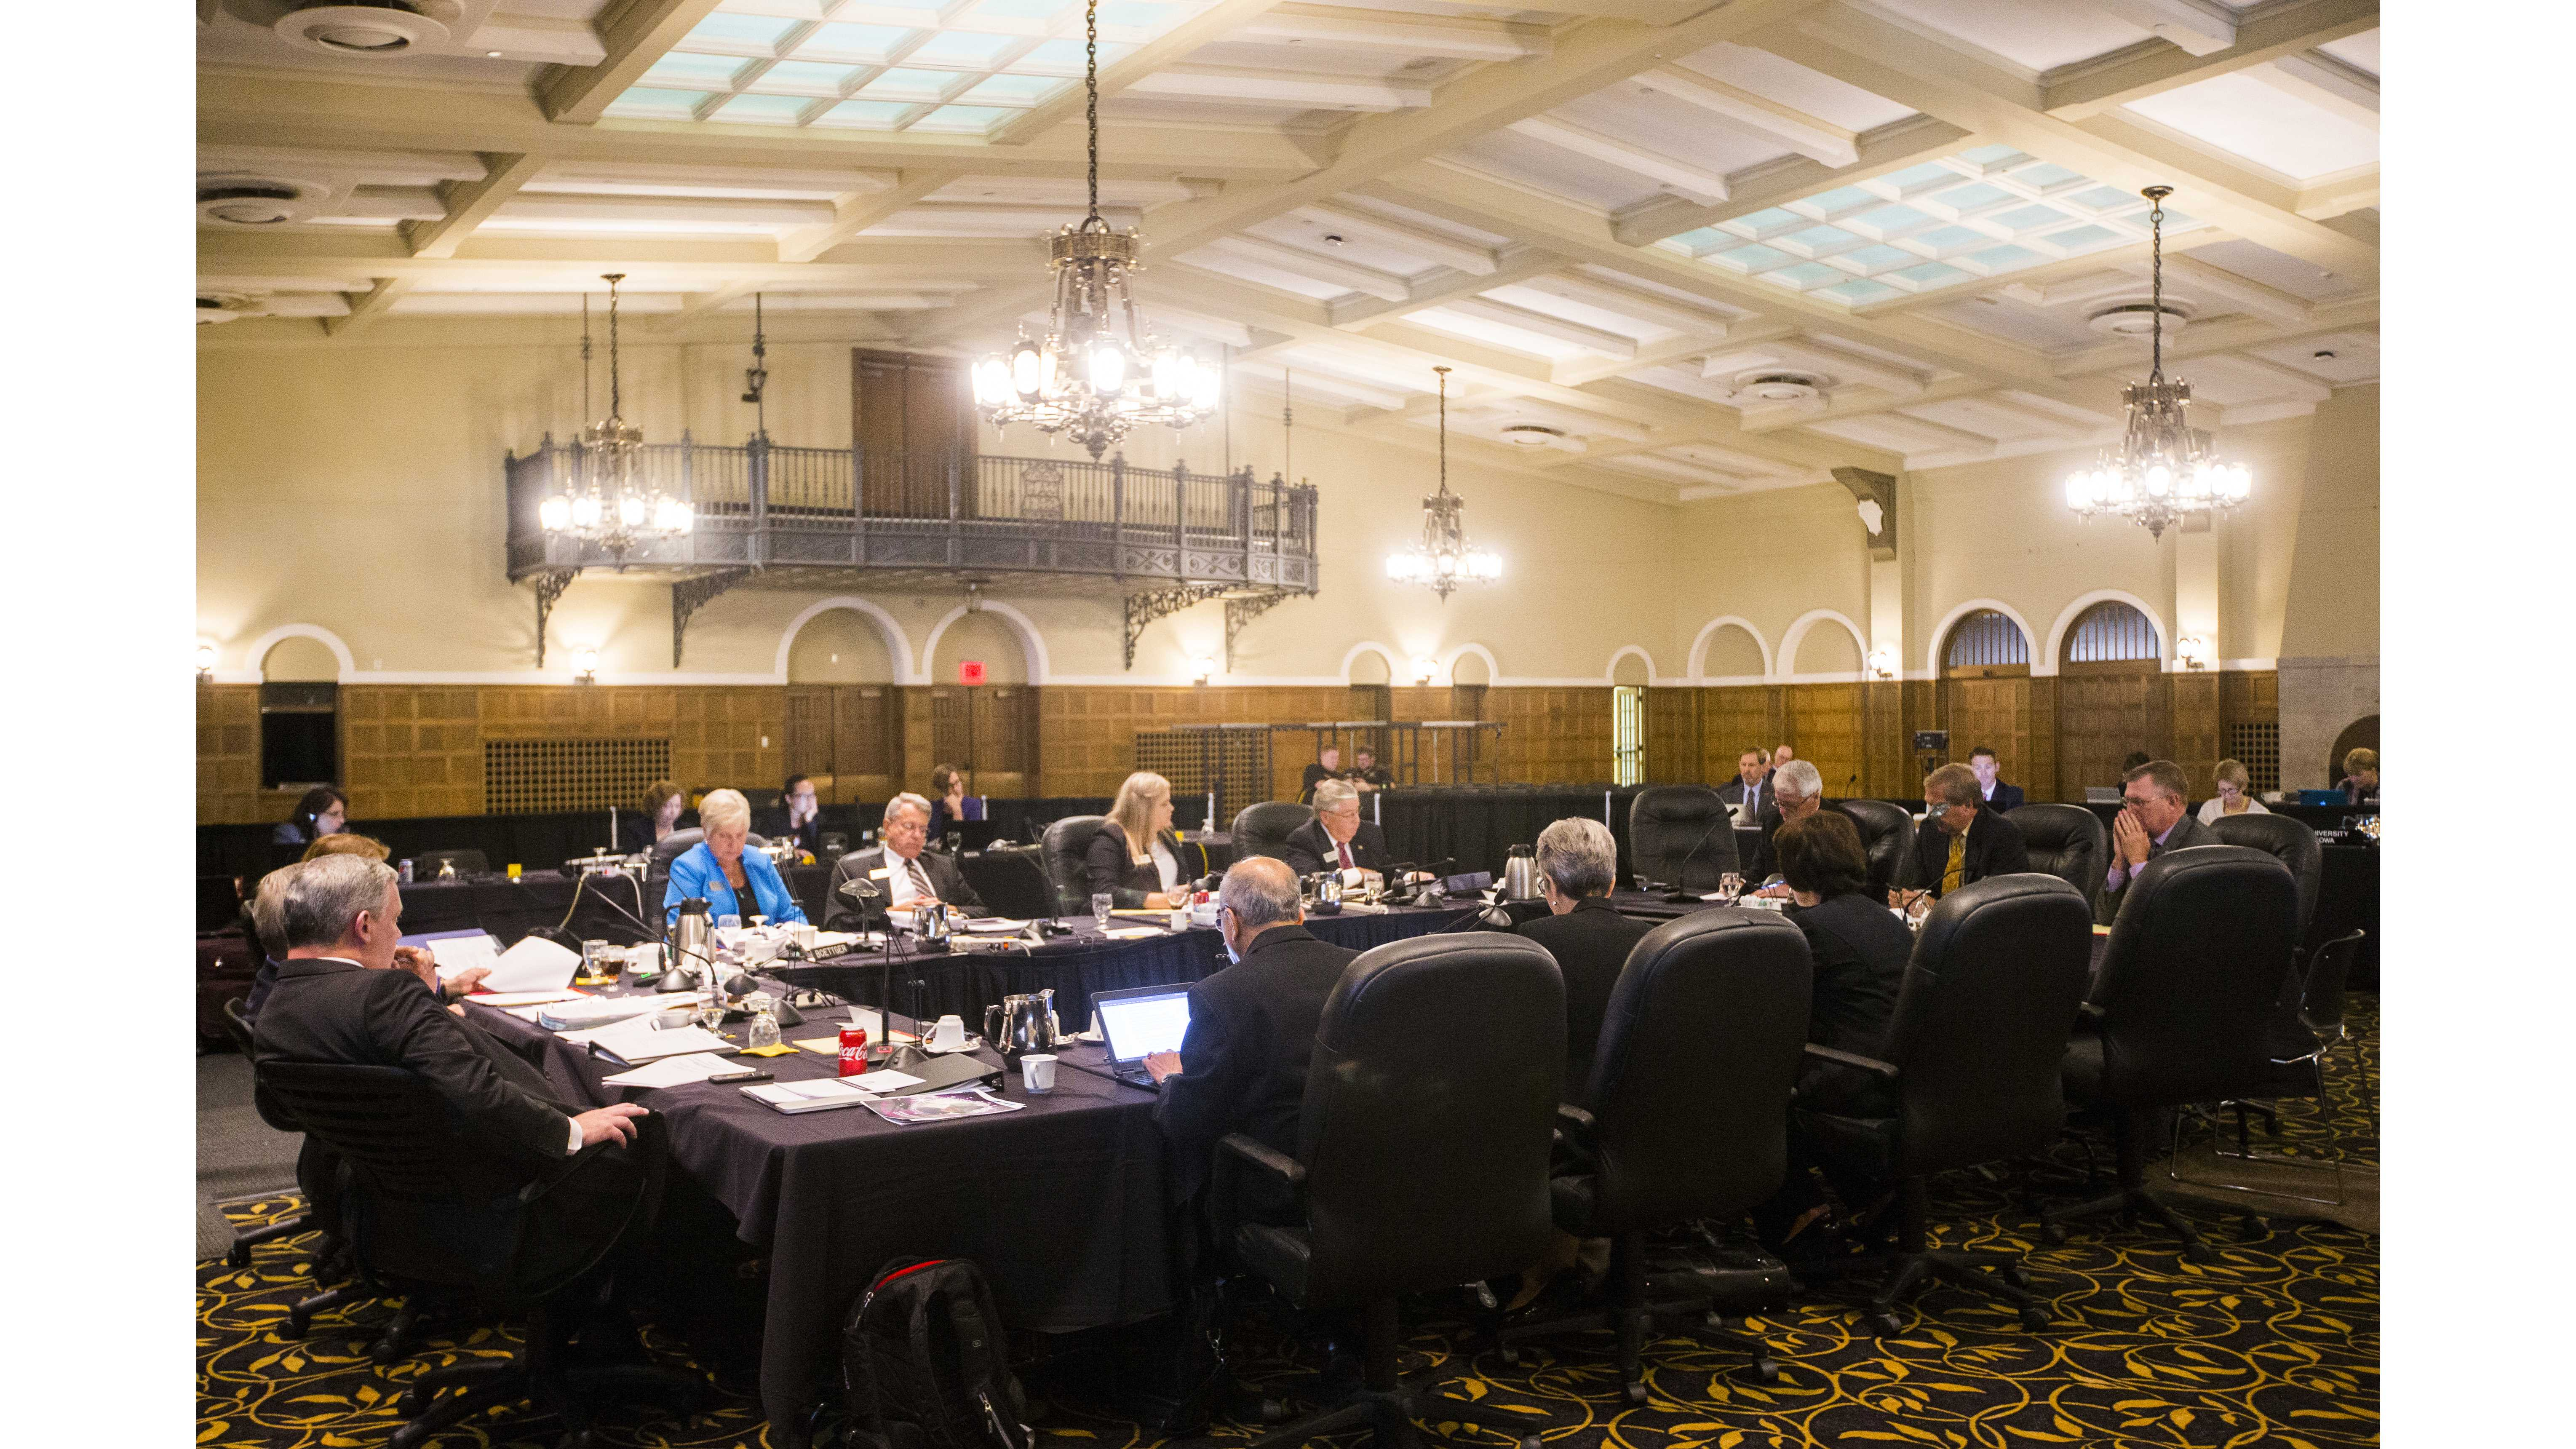 Regents listen to a presentation during a state Board of Regents meeting in the IMU main lounge on Thursday, Sept. 7, 2017. (File Photo/The Daily Iowan)